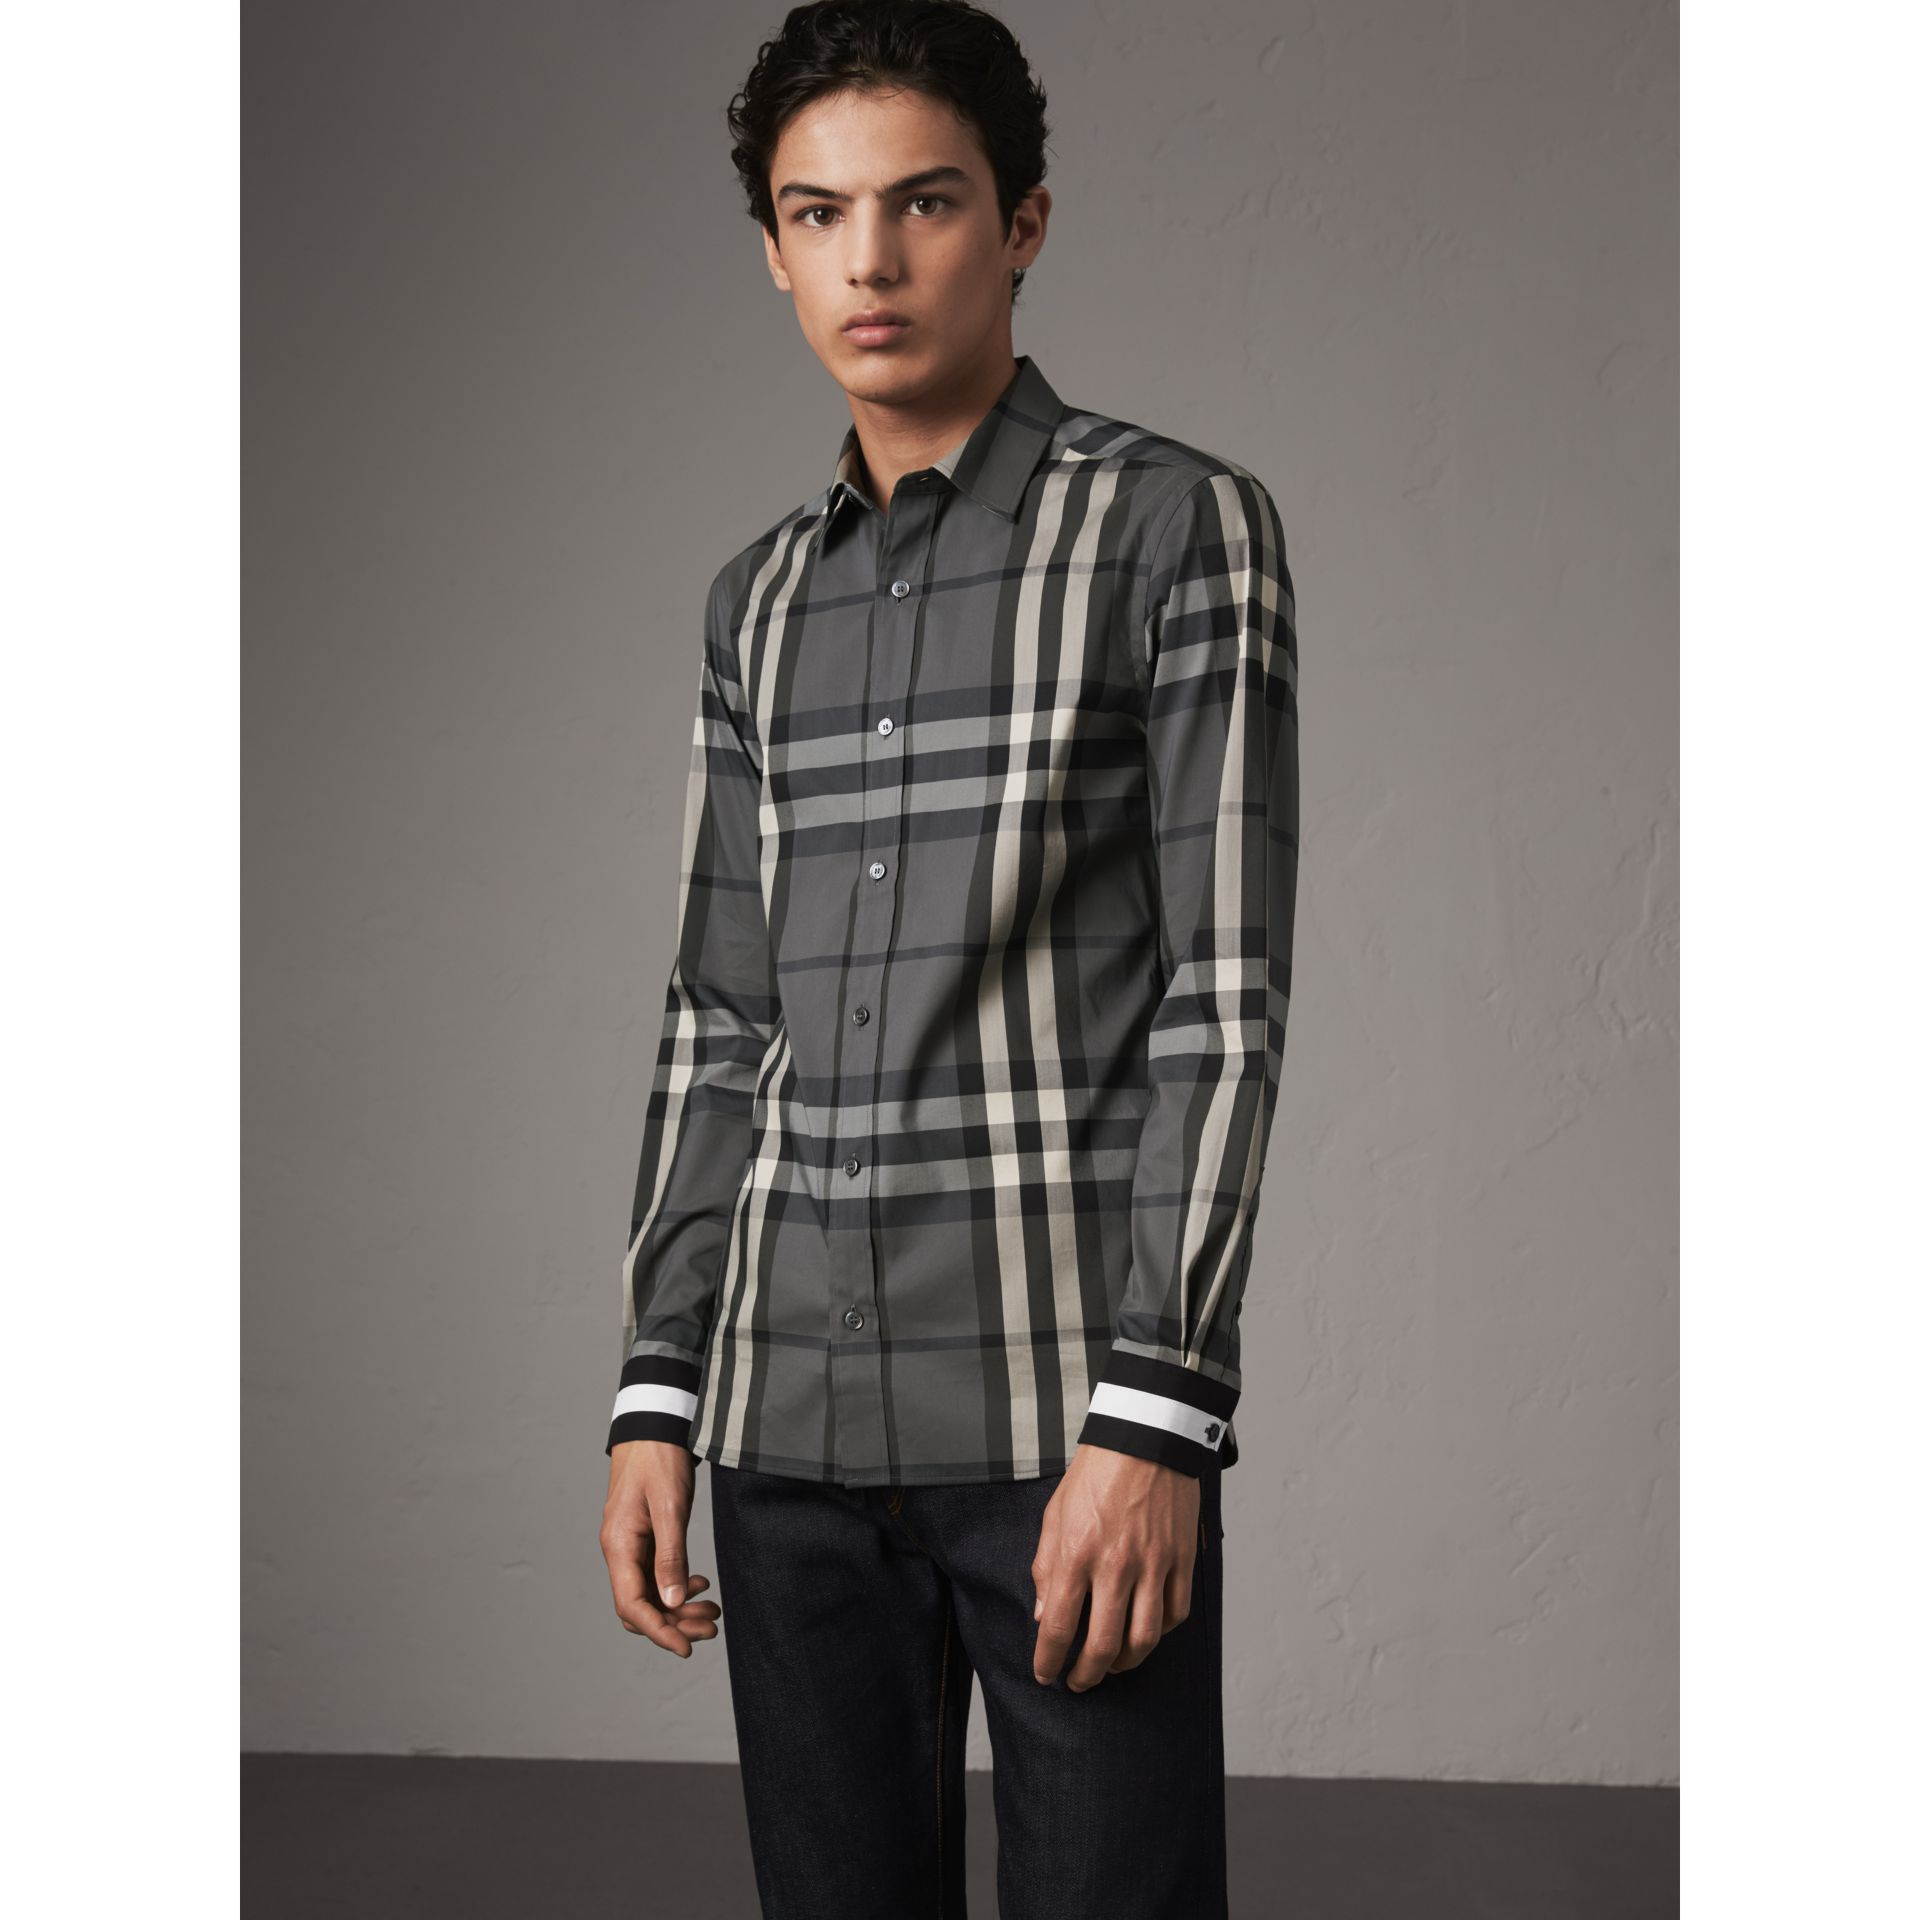 Striped Cuff Check Cotton Blend Shirt in Charcoal - Men | Burberry - gallery image 1